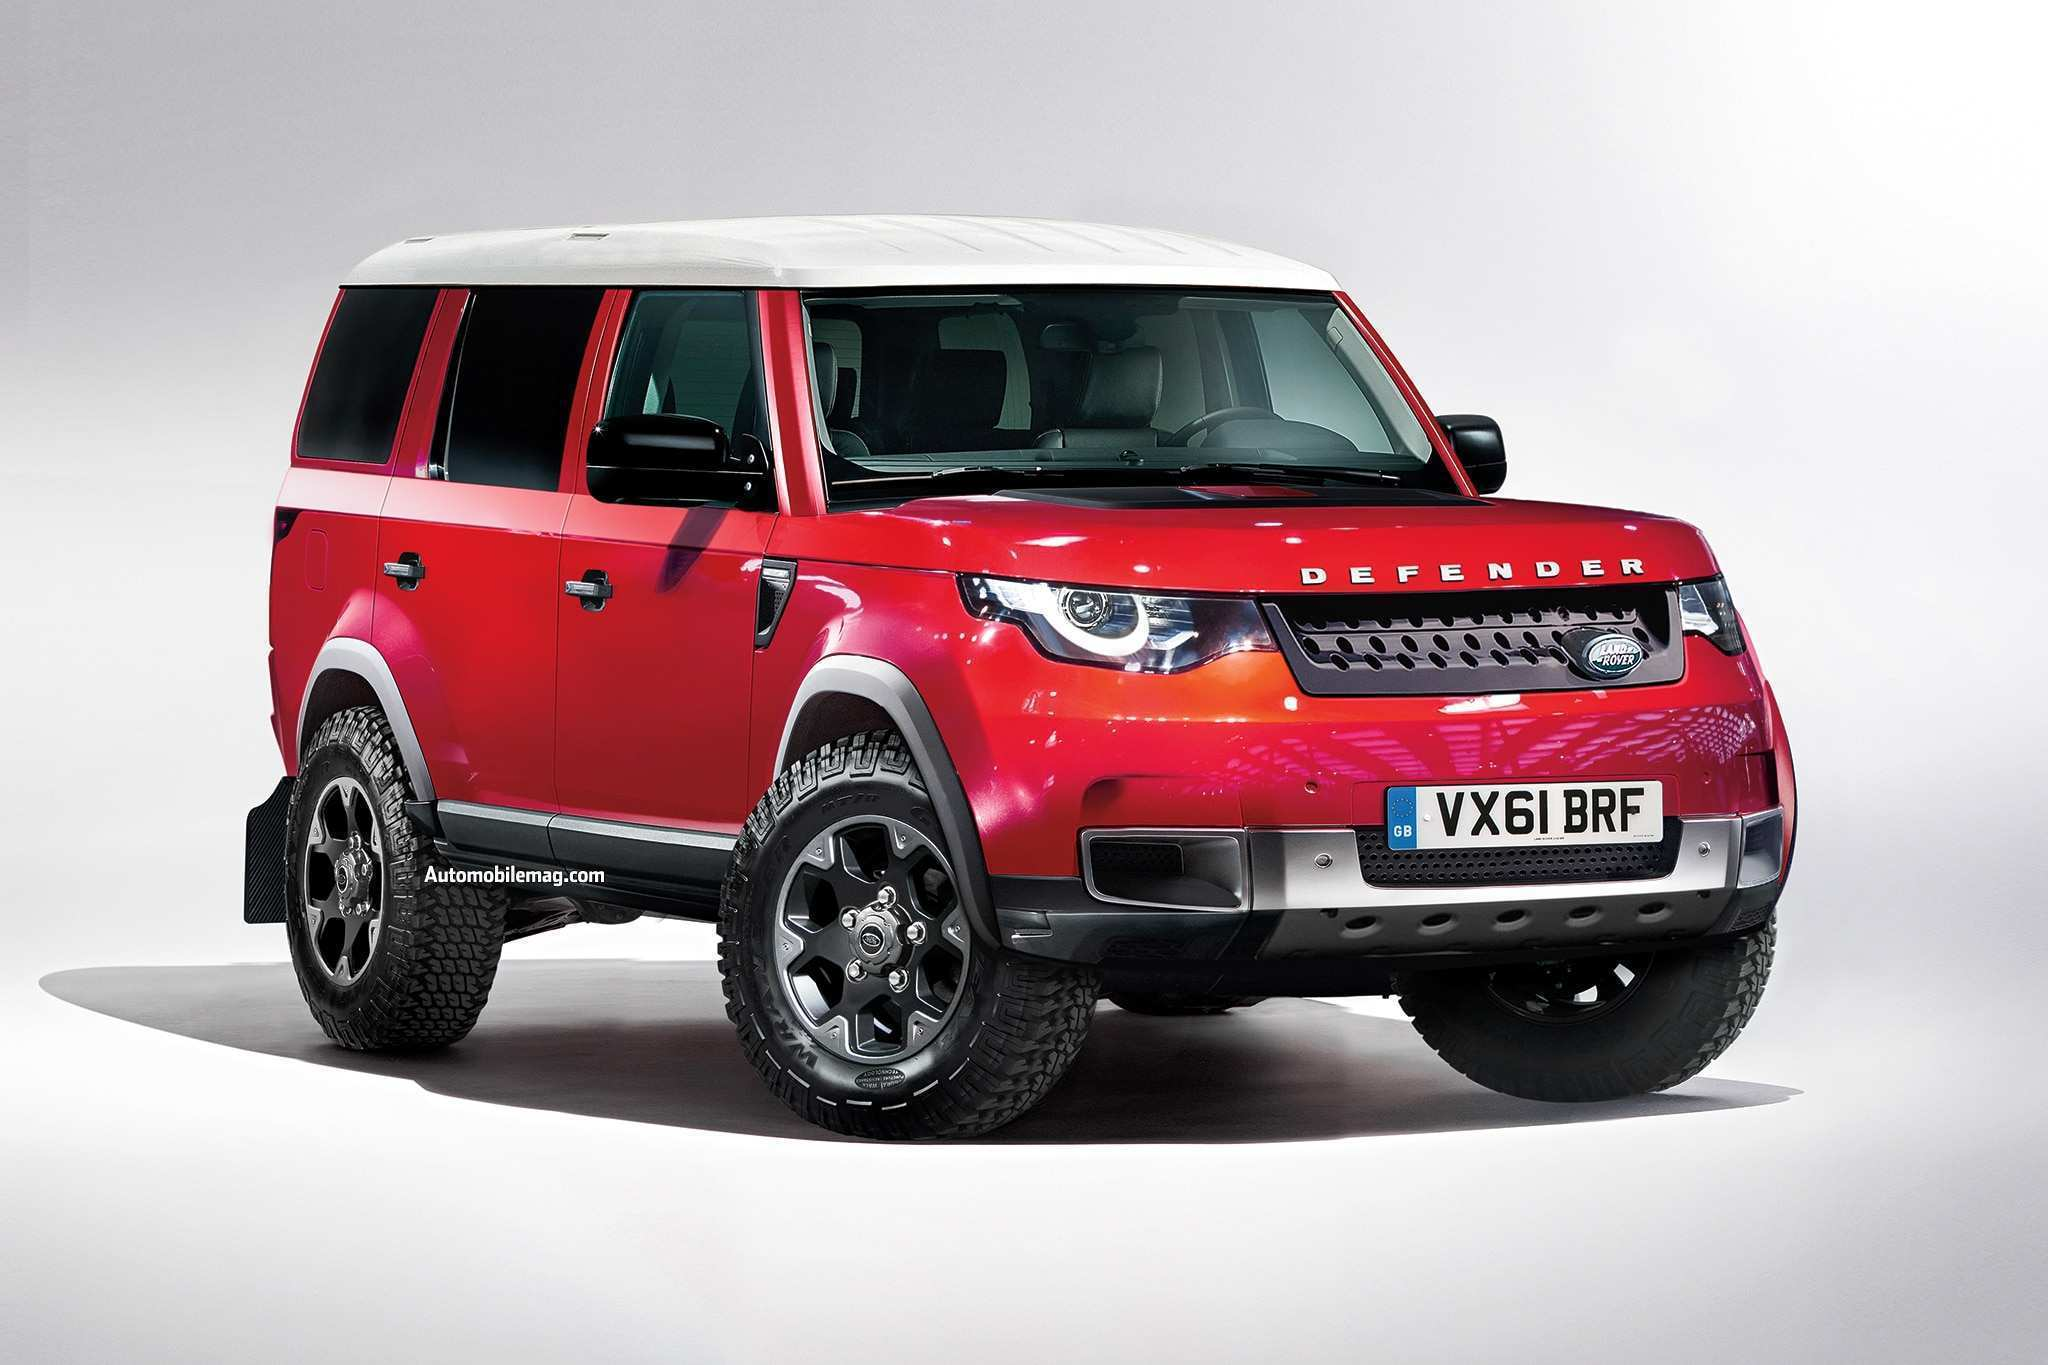 45 Great 2019 Land Rover Defender Price Style for 2019 Land Rover Defender Price